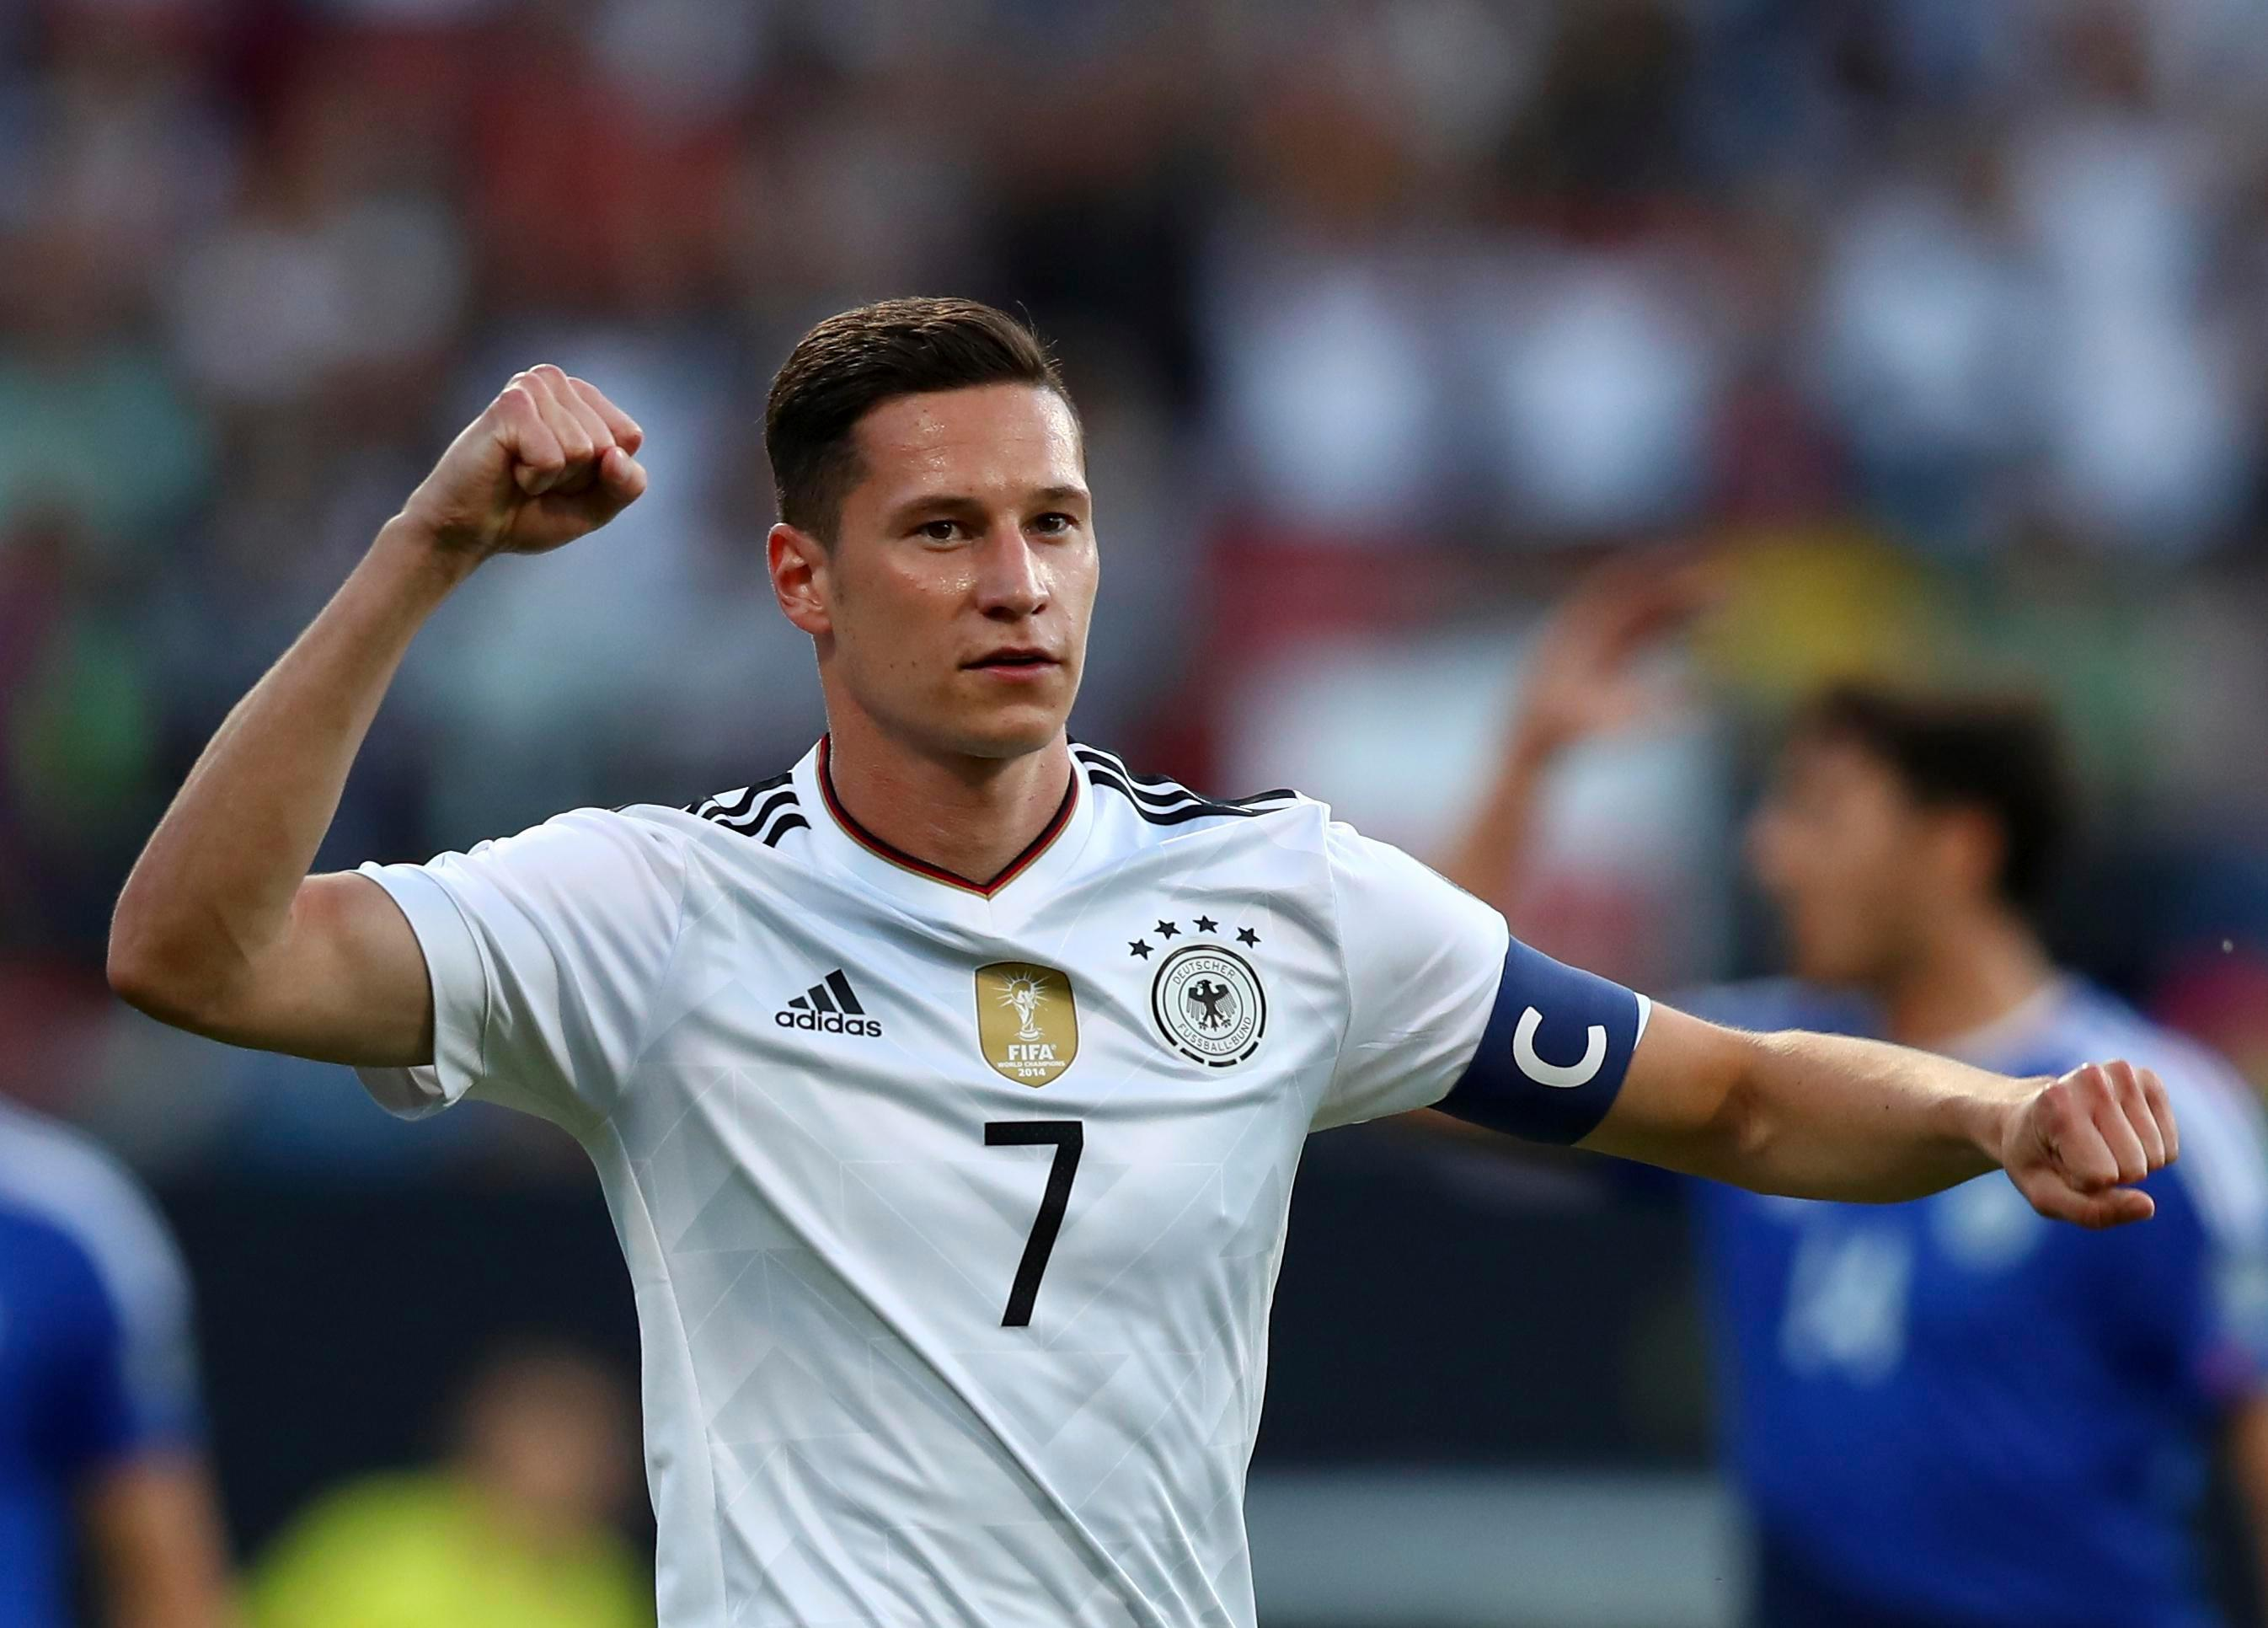 Barcelona have also been linked with Draxler